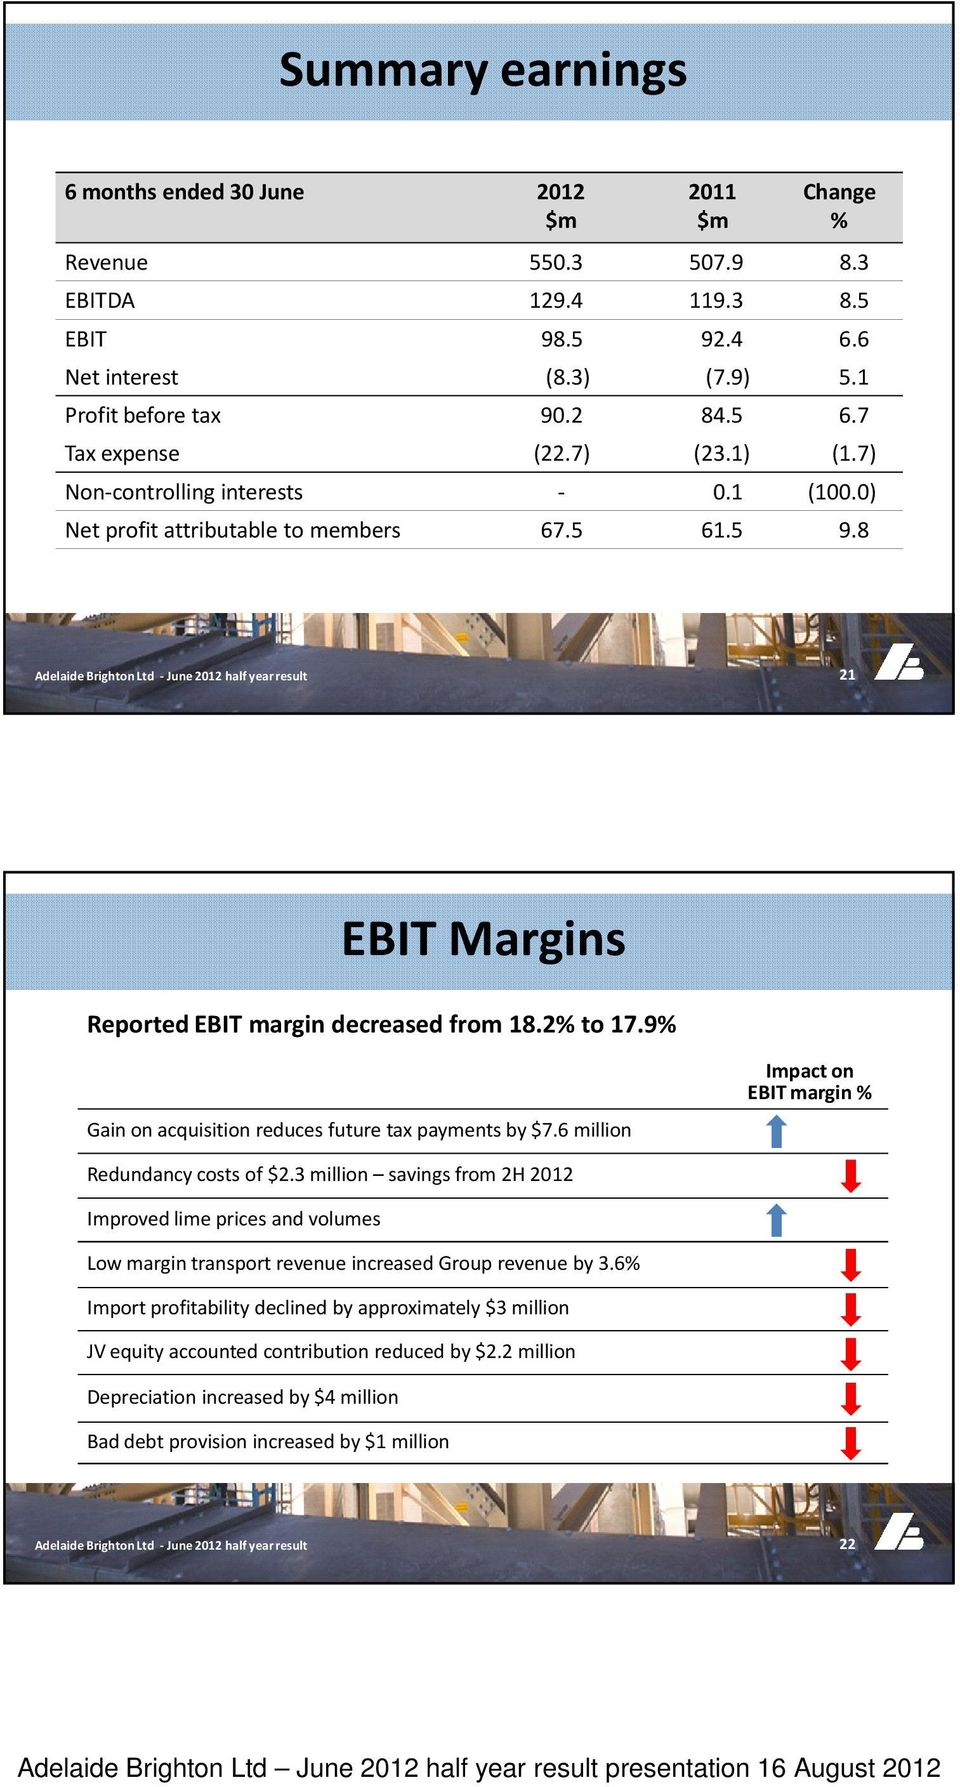 9% Gain on acquisition reduces future tax payments by $7.6 million Impact on EBIT margin % Redundancy costs of $2.